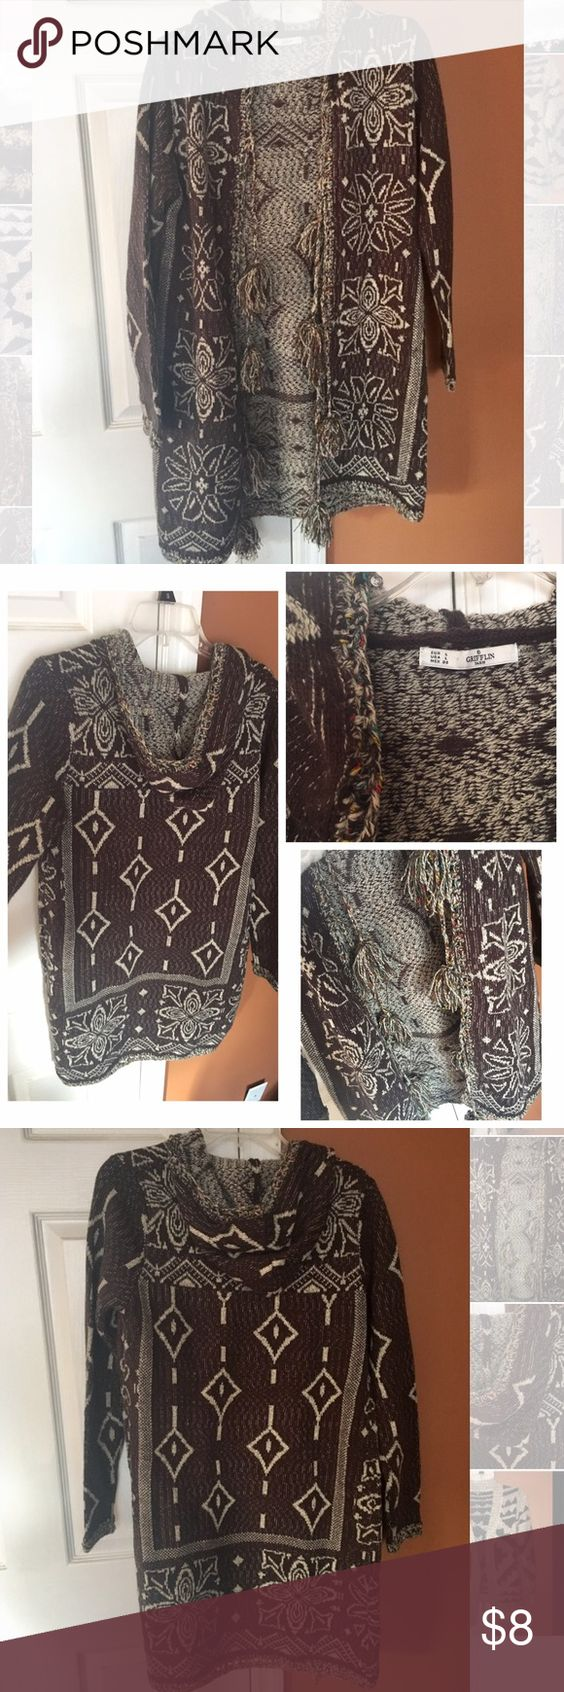 Brown multi-colored hooded cardigan- Large